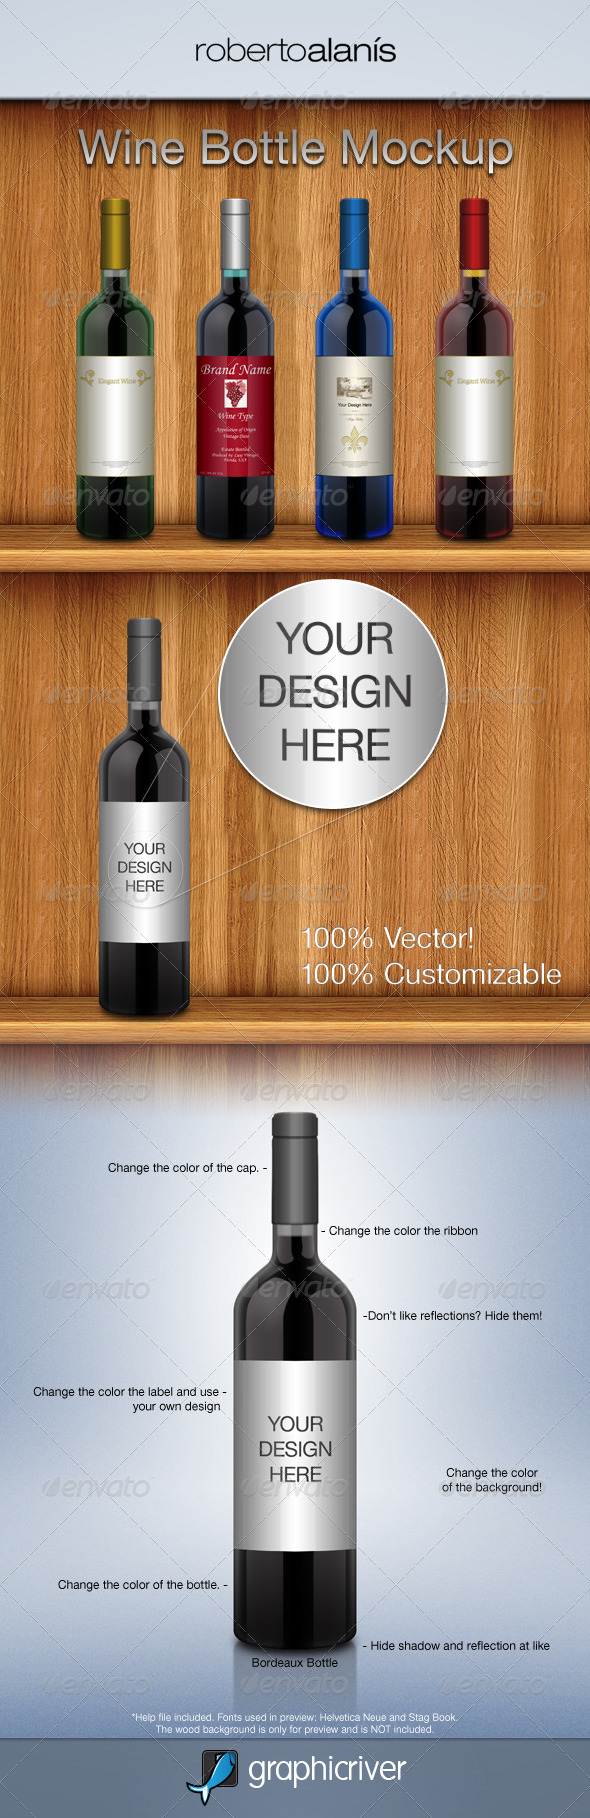 Wine Bottle Mockup